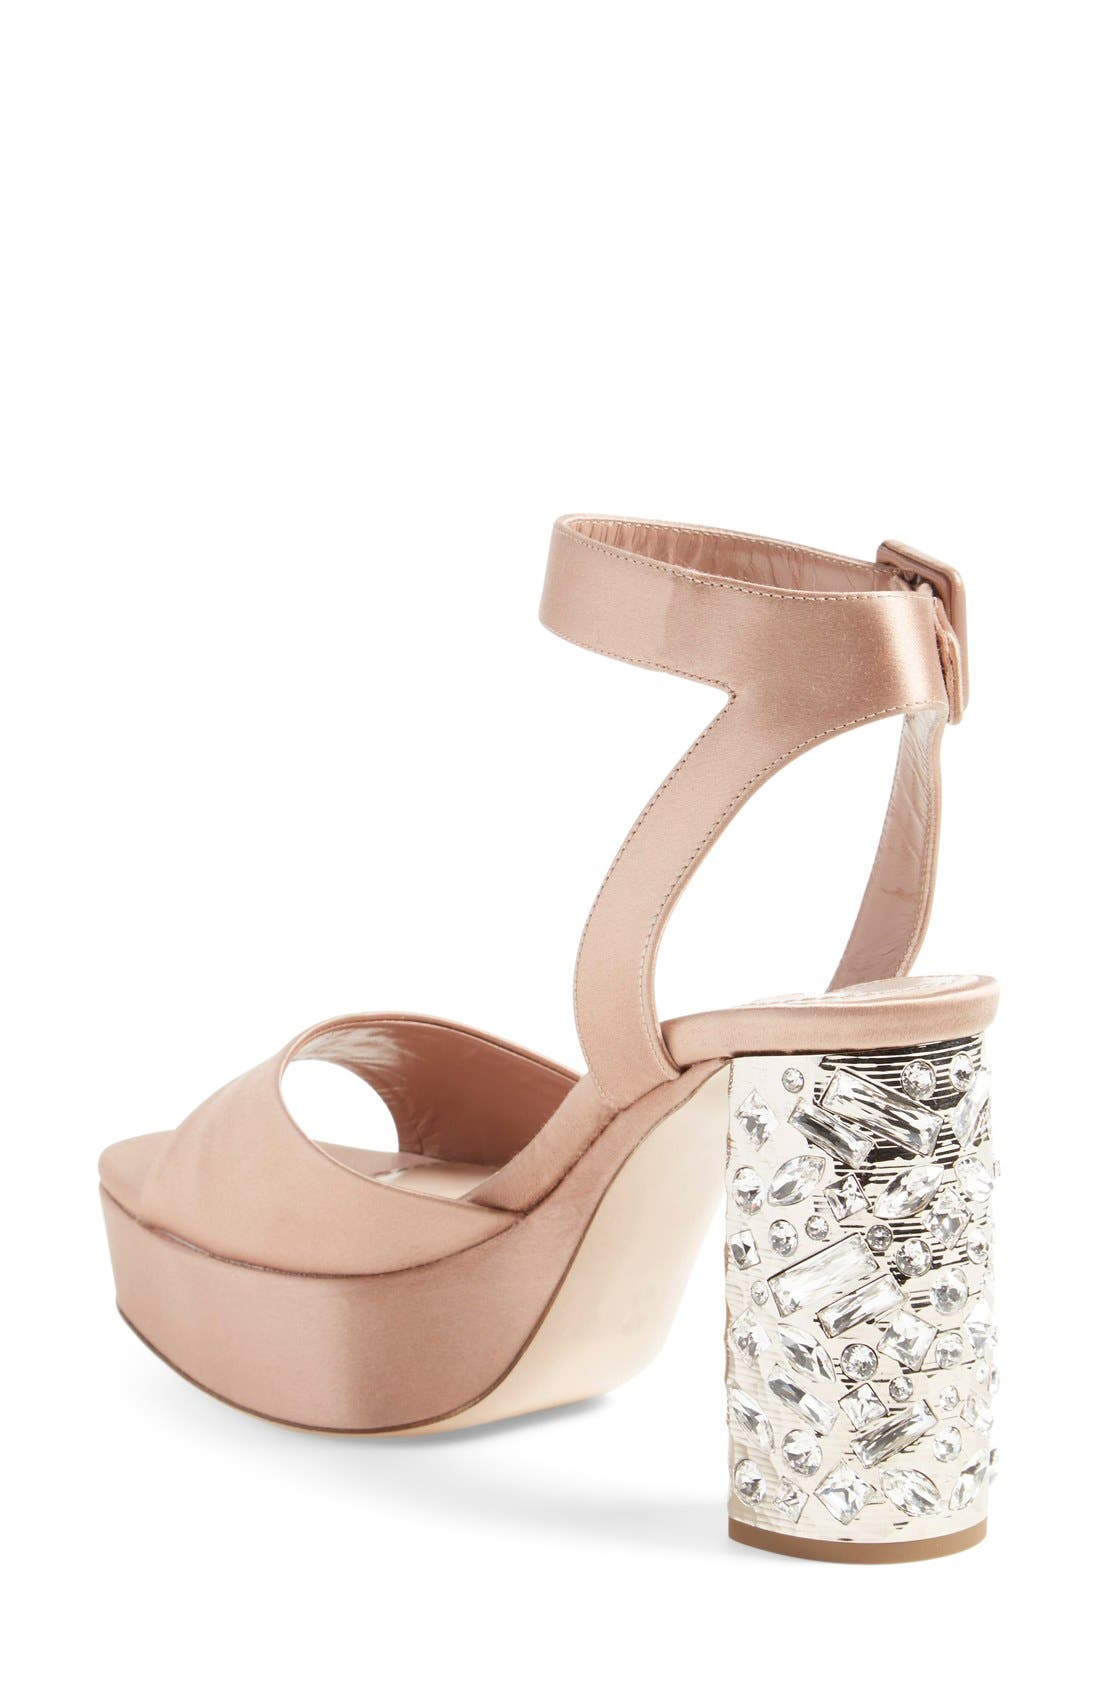 Alternate Image 2  - Miu Miu Studded Block Heel Platform Sandal (Women) (Nordstrom Exclusive)